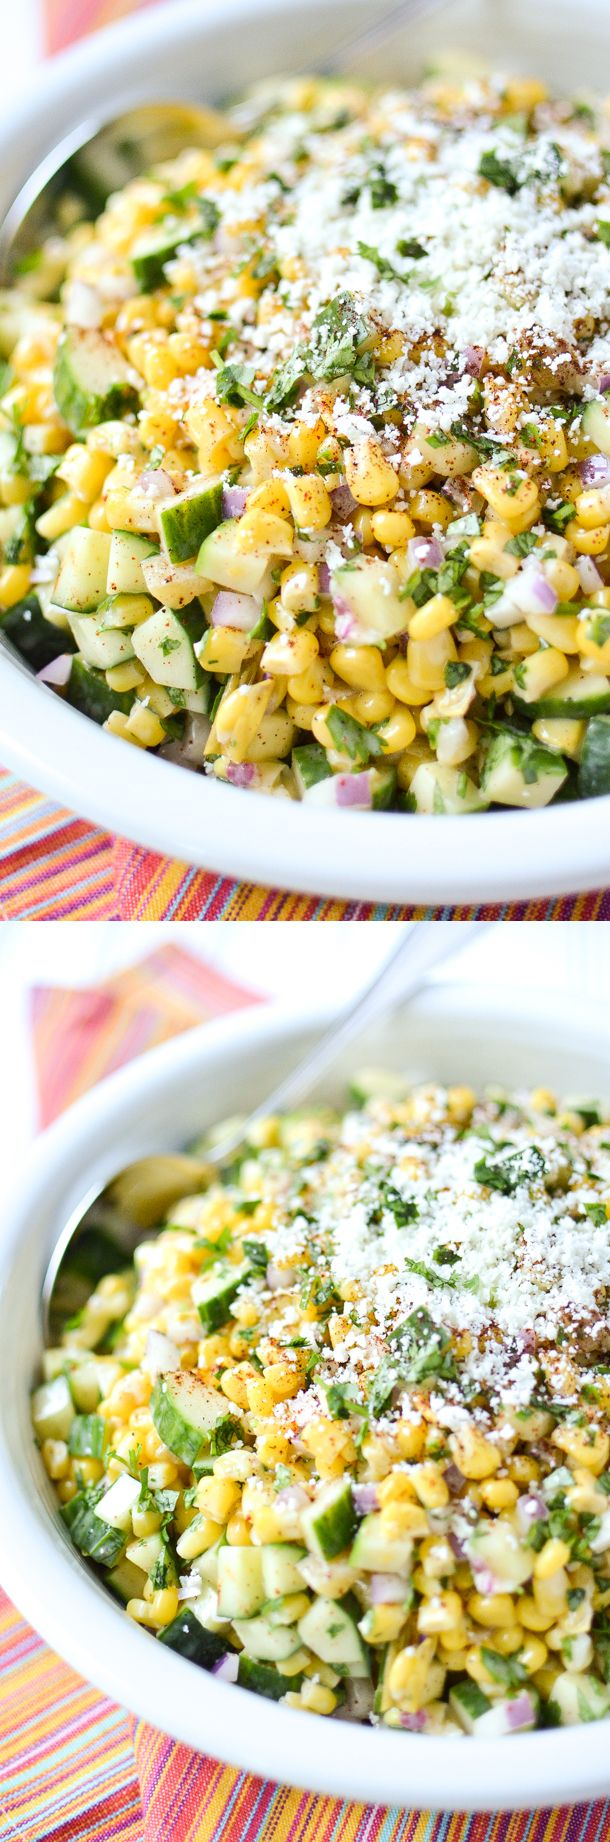 Mexican Street Corn & Cucumber Salad | @simplywhisked